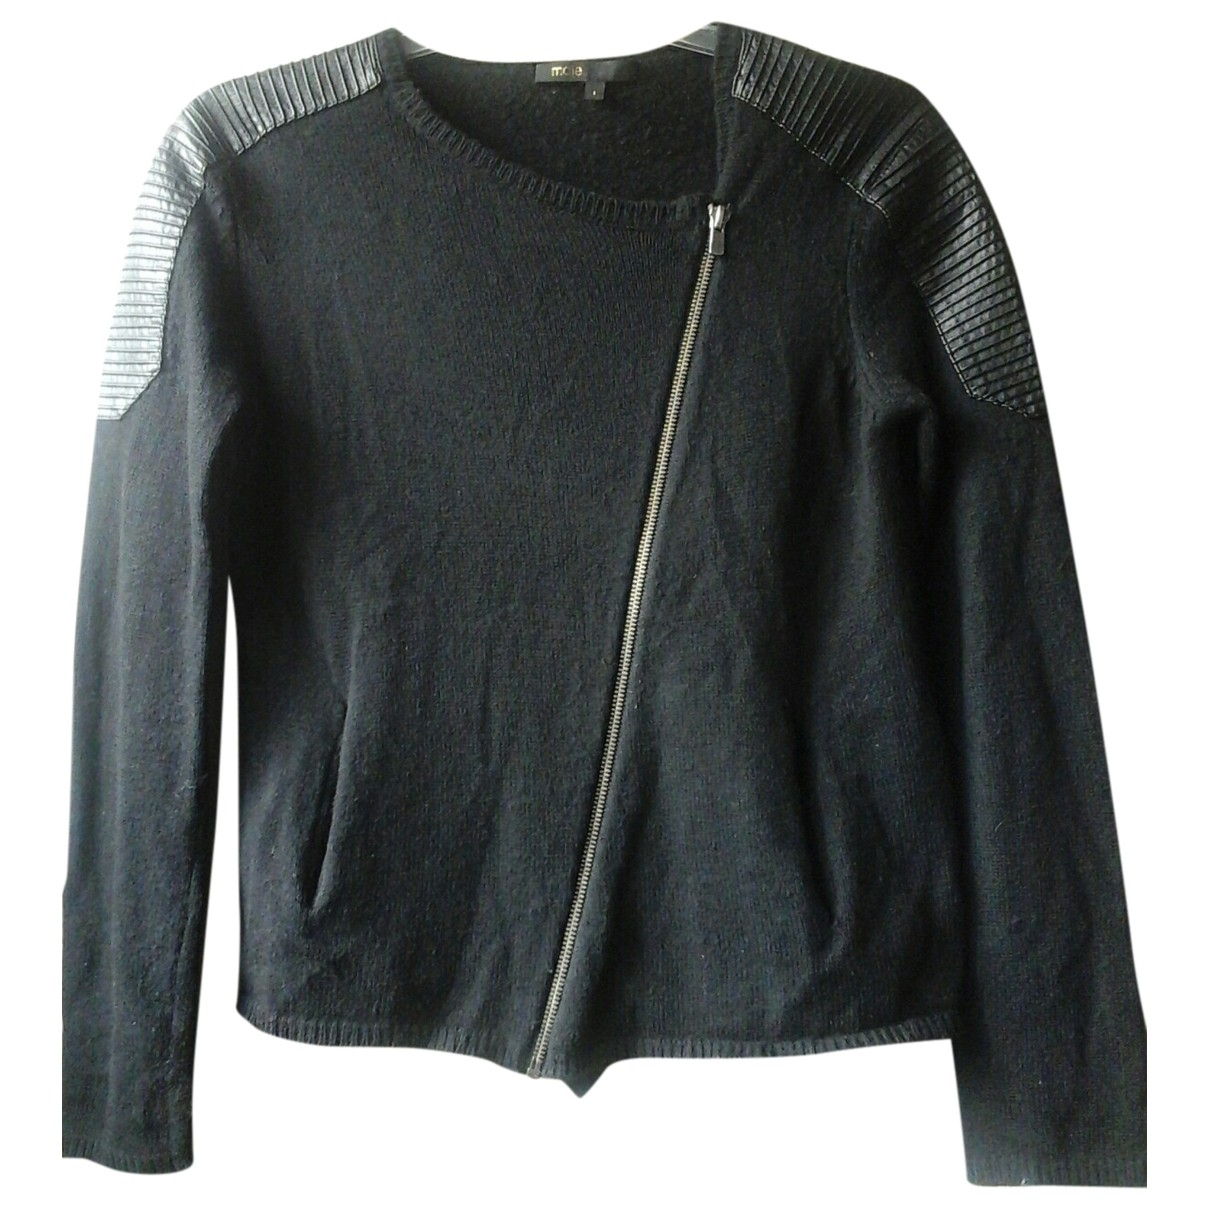 Maje \N Pullover in  Schwarz Wolle